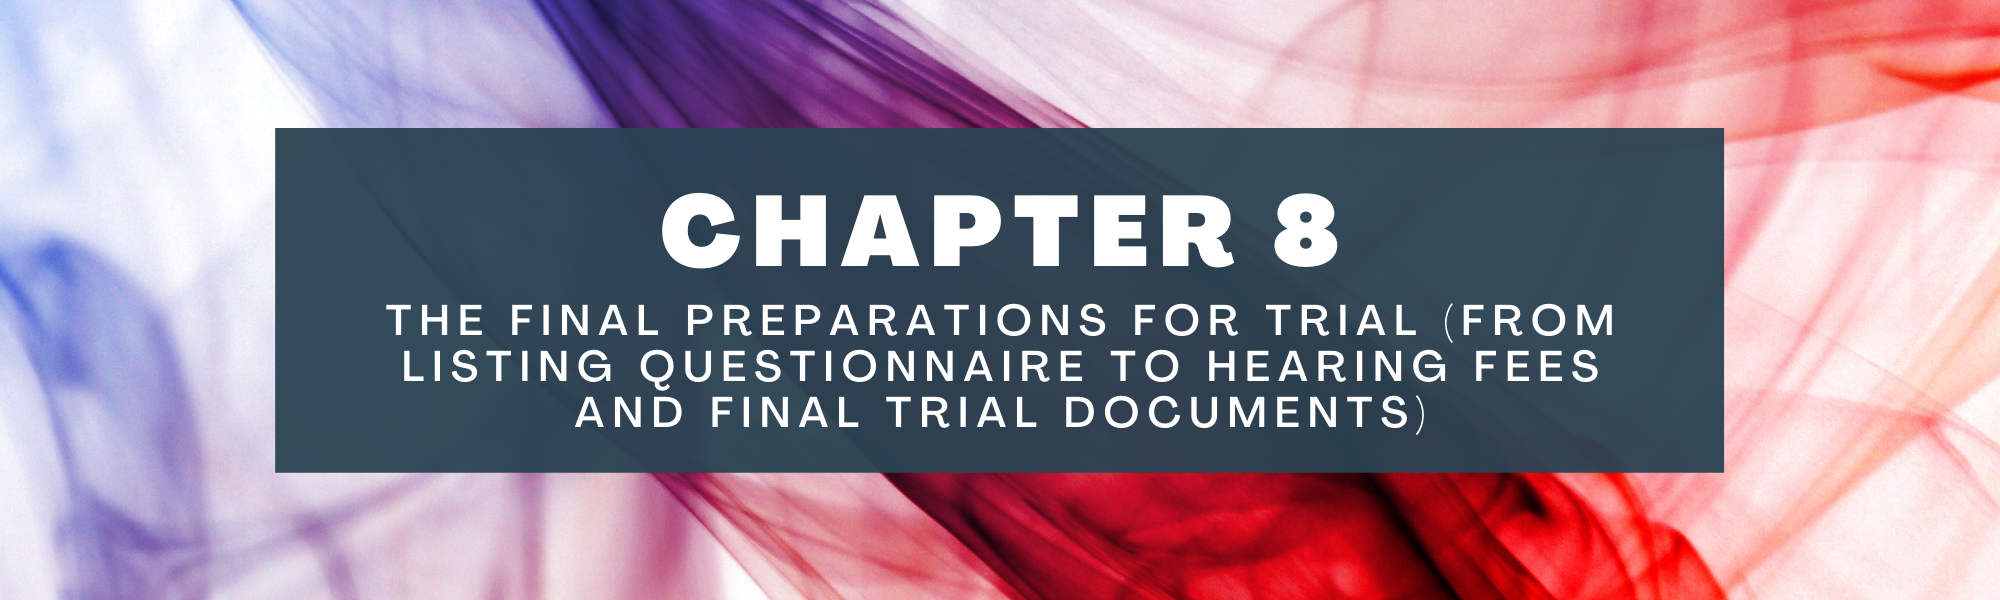 Final preparations for trial